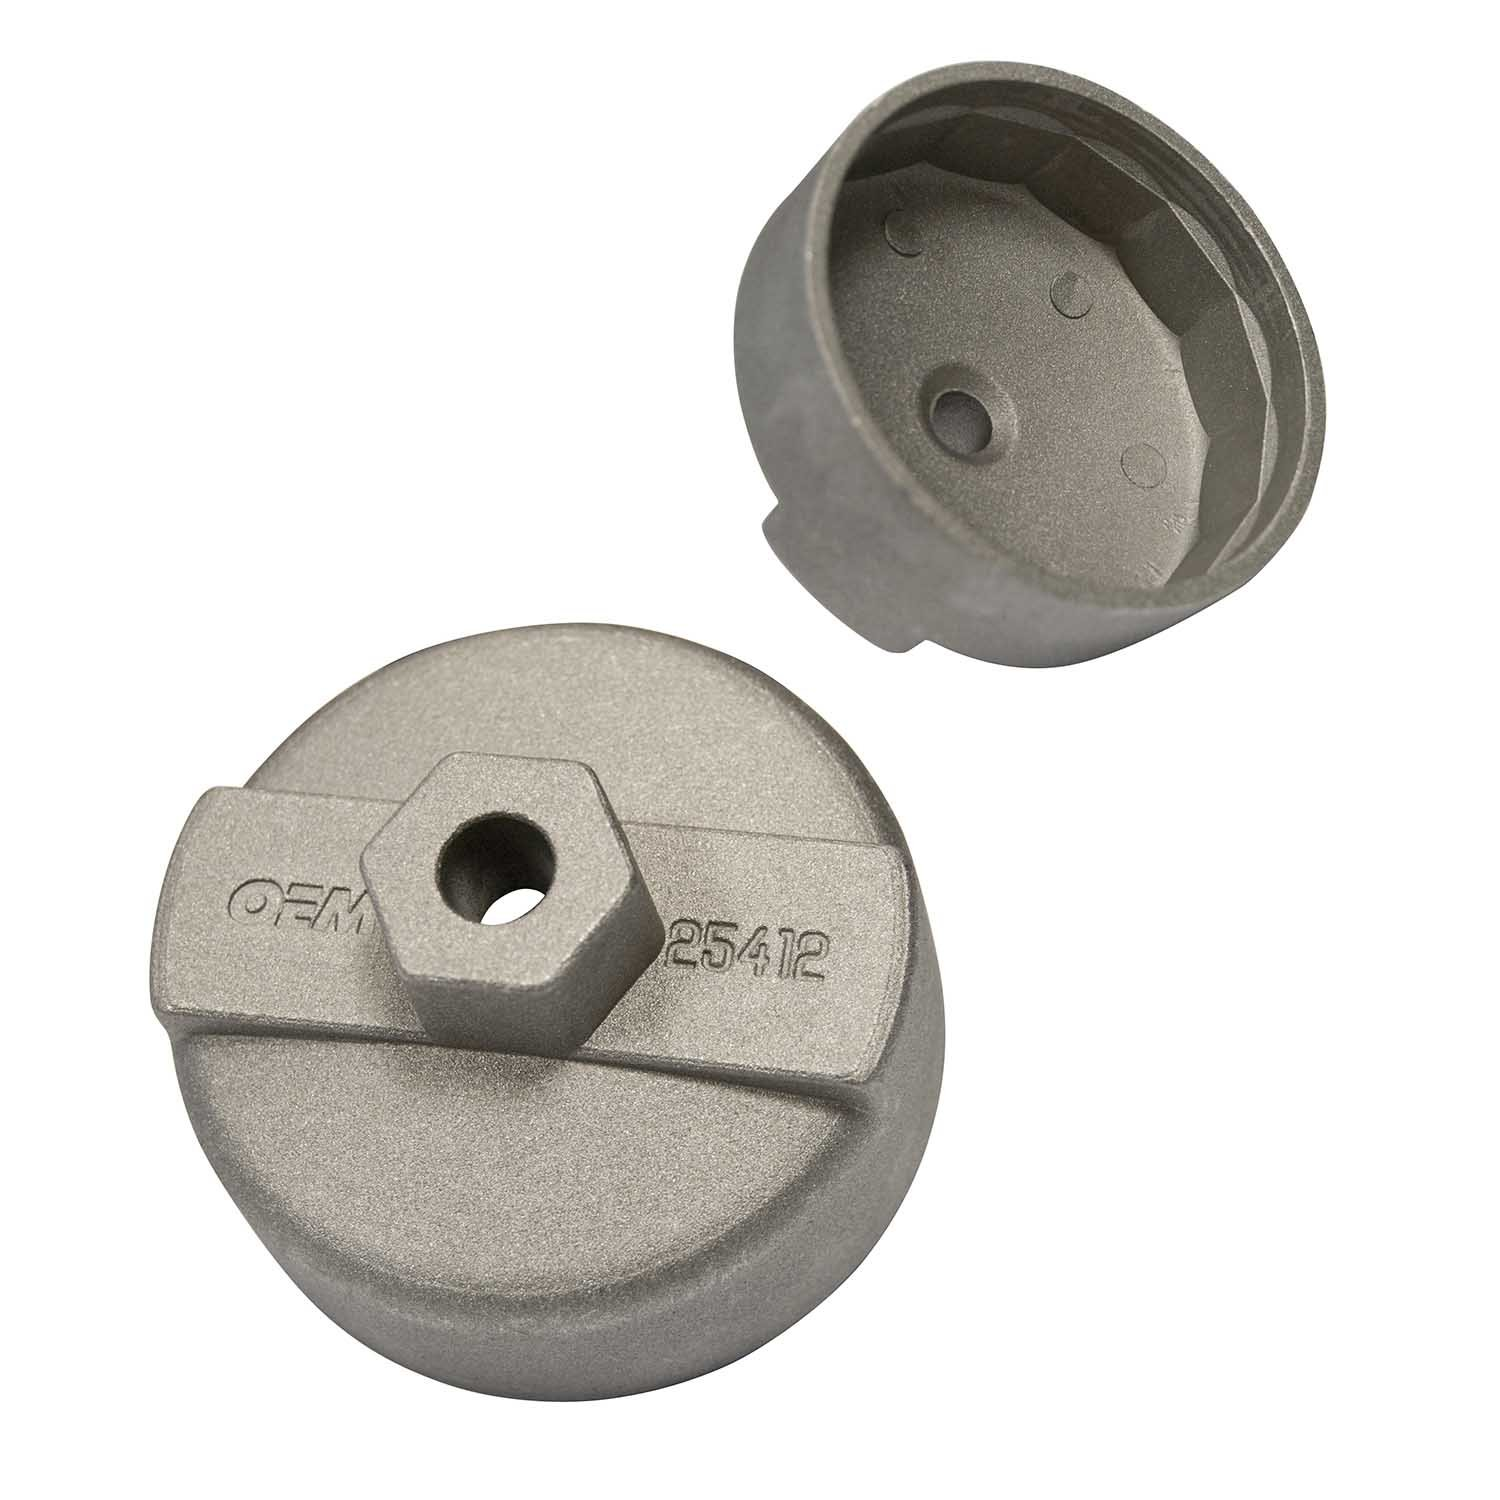 OEMTOOLS 25412 7/8 Inch Oil Filter Cap Style Wrench GREAT NECK